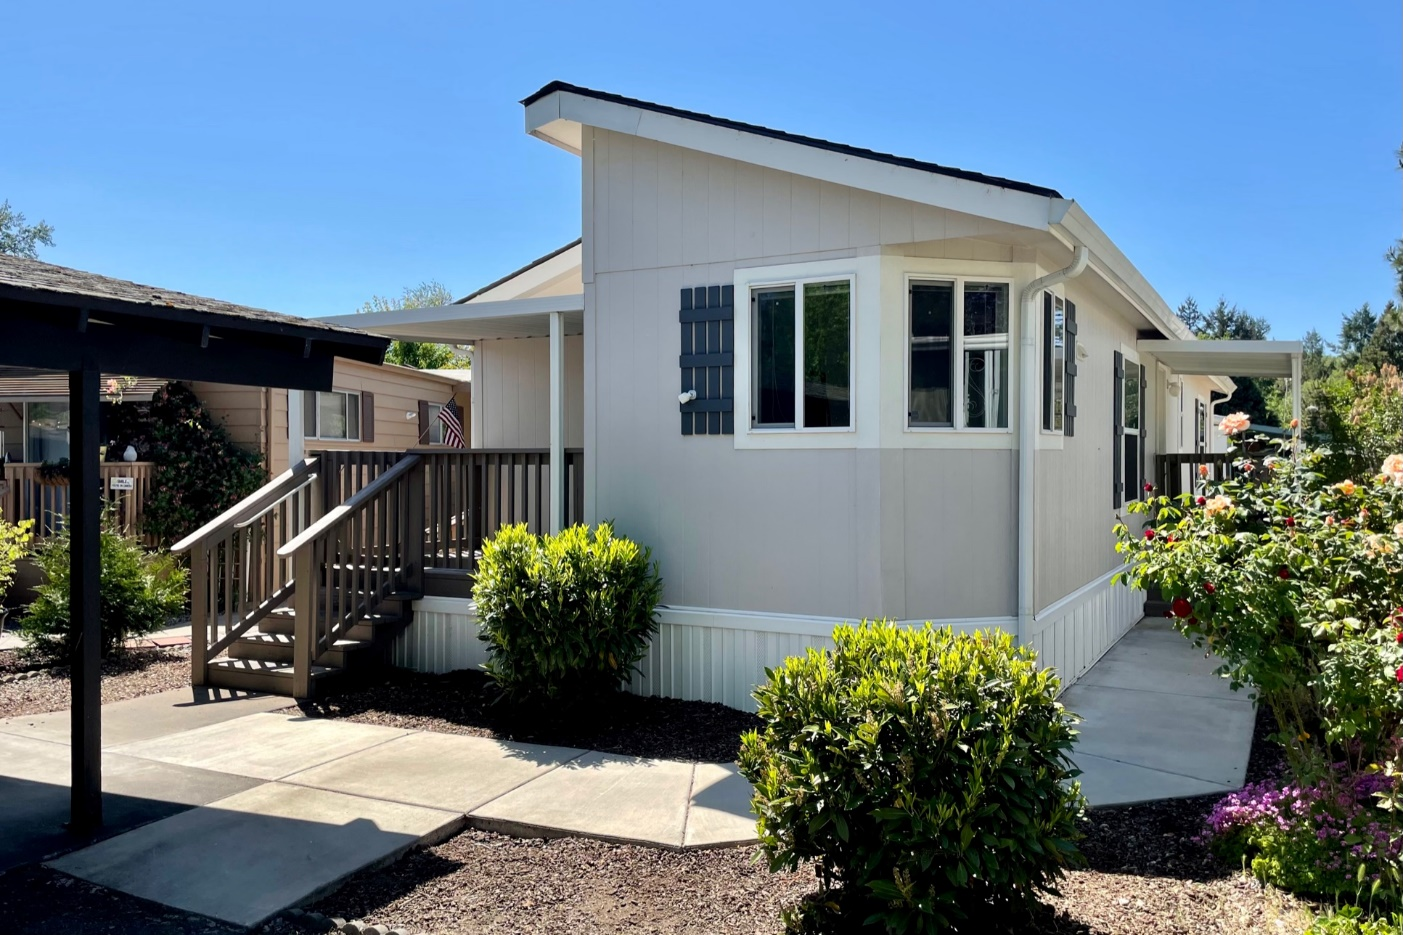 Manufactured Homes And Mobile For Sale In Adult Parks Southern Oregon